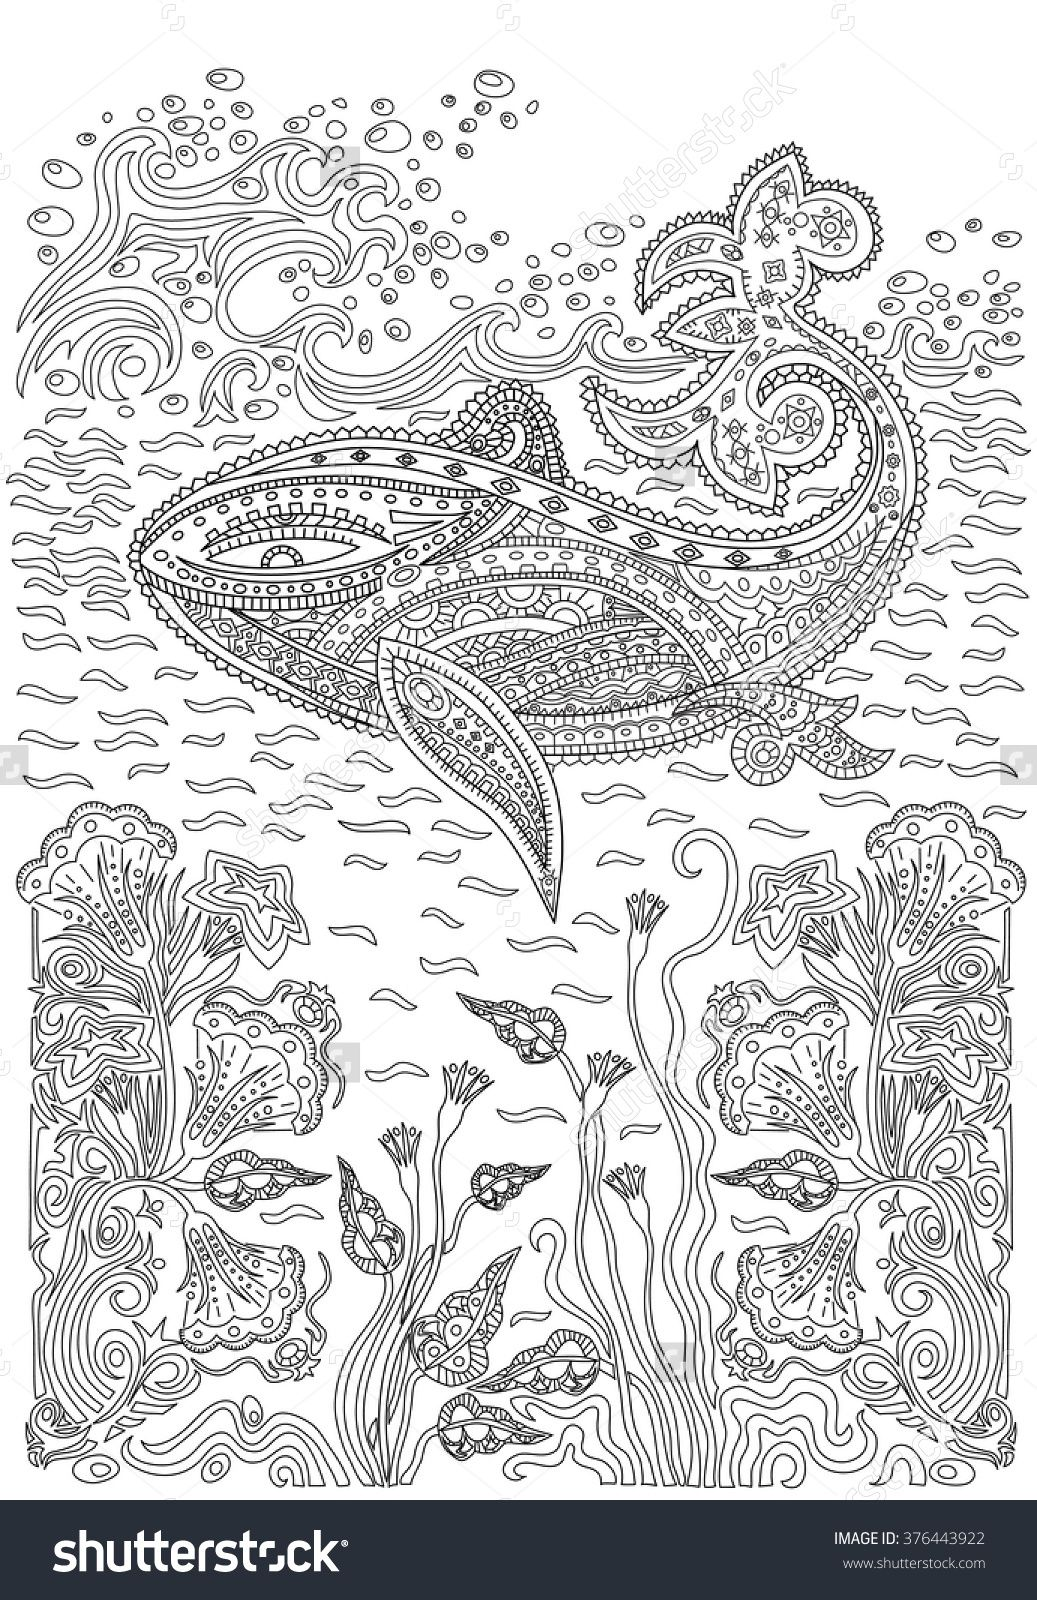 Humpback Whale in the Waves and Seaweed Coloring Page Zentangle I ...